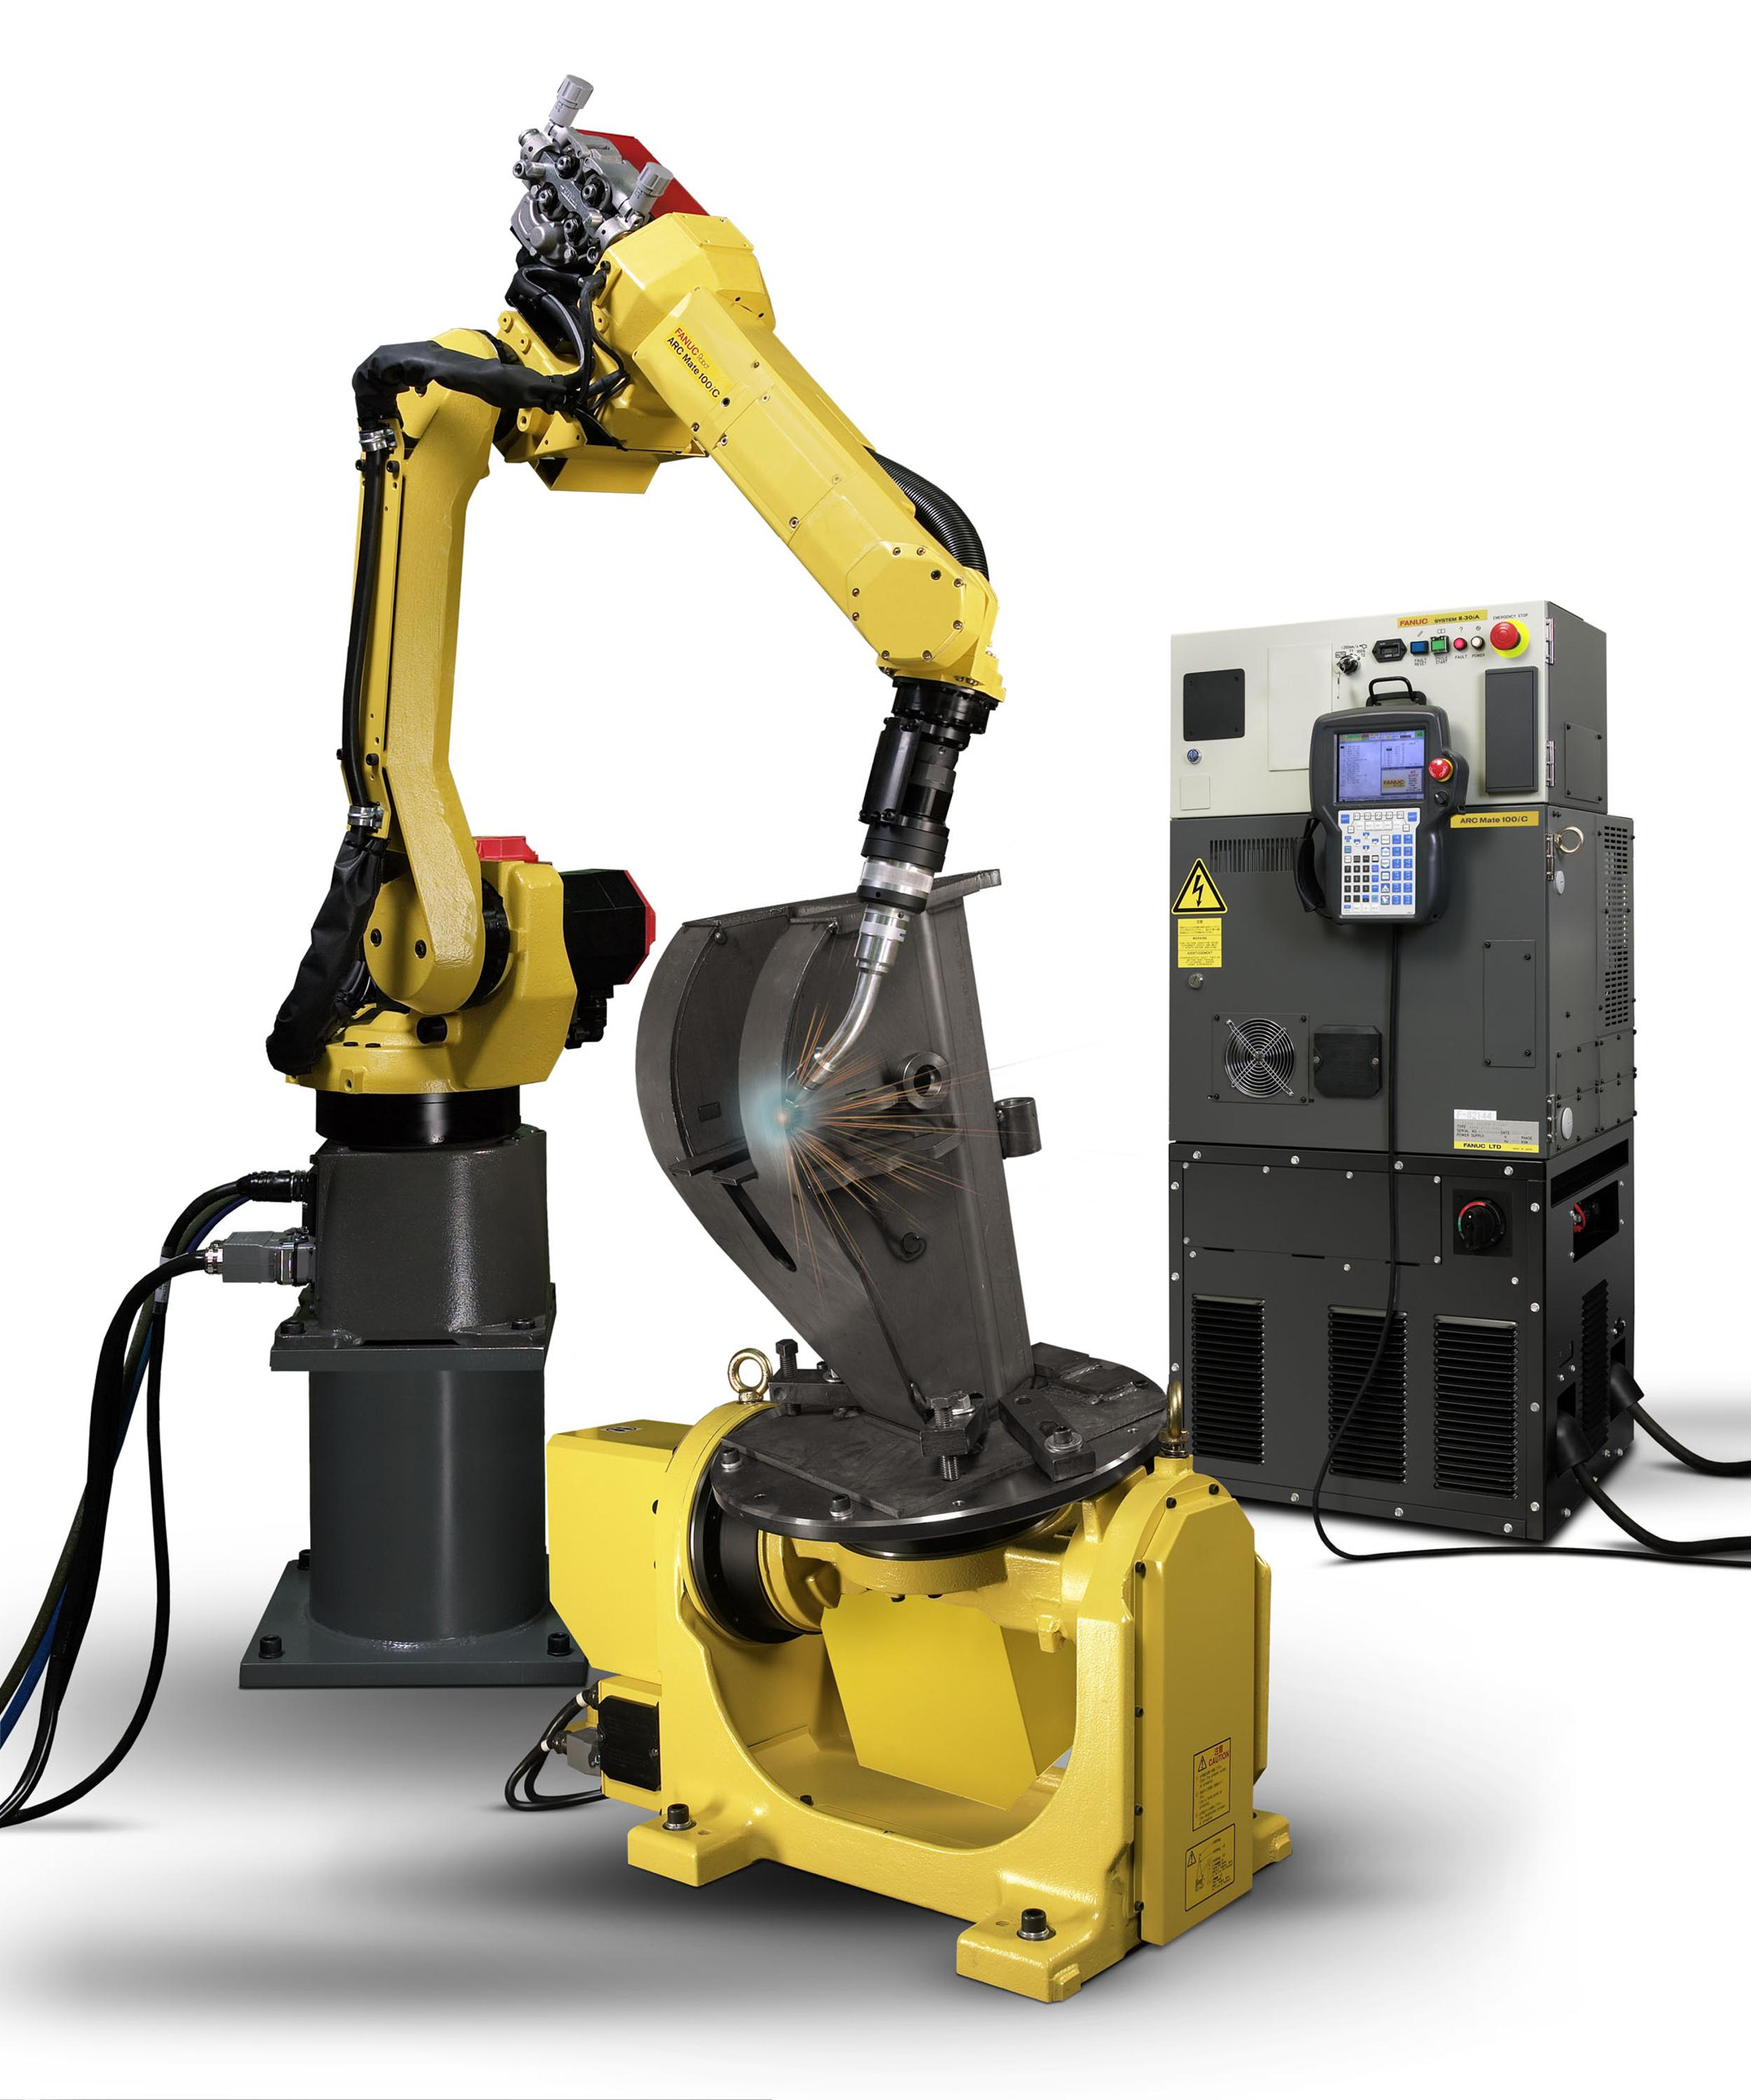 Hot Selling Automatic Robotic Welding Machine 6 Axis Welding Robot - Buy  Industrial Welding Robot,Cnc Welding Robot,Automatic Robotic Welding  Machine